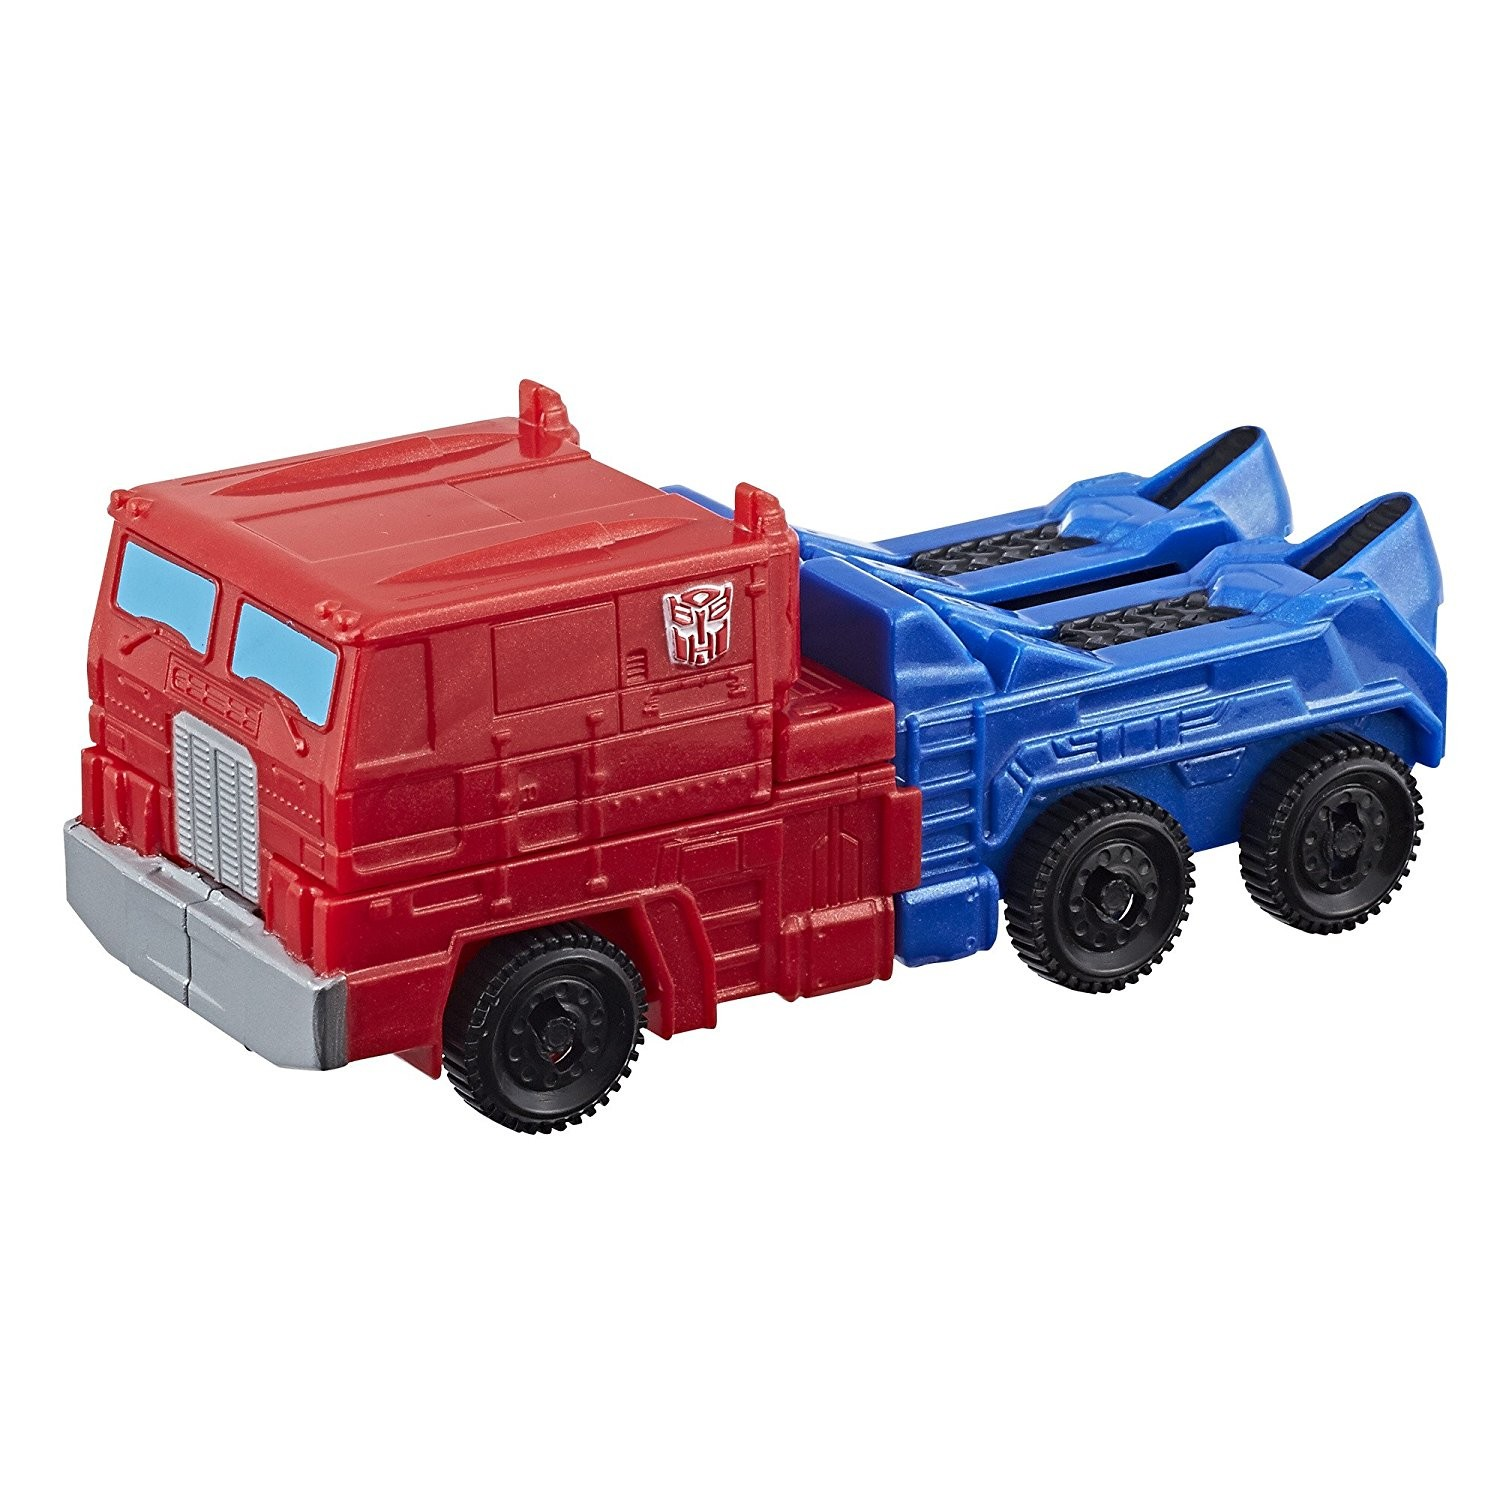 "Transformers News: Transformers Authentics 4.5"" Toys Listed on Amazon with Official Images"